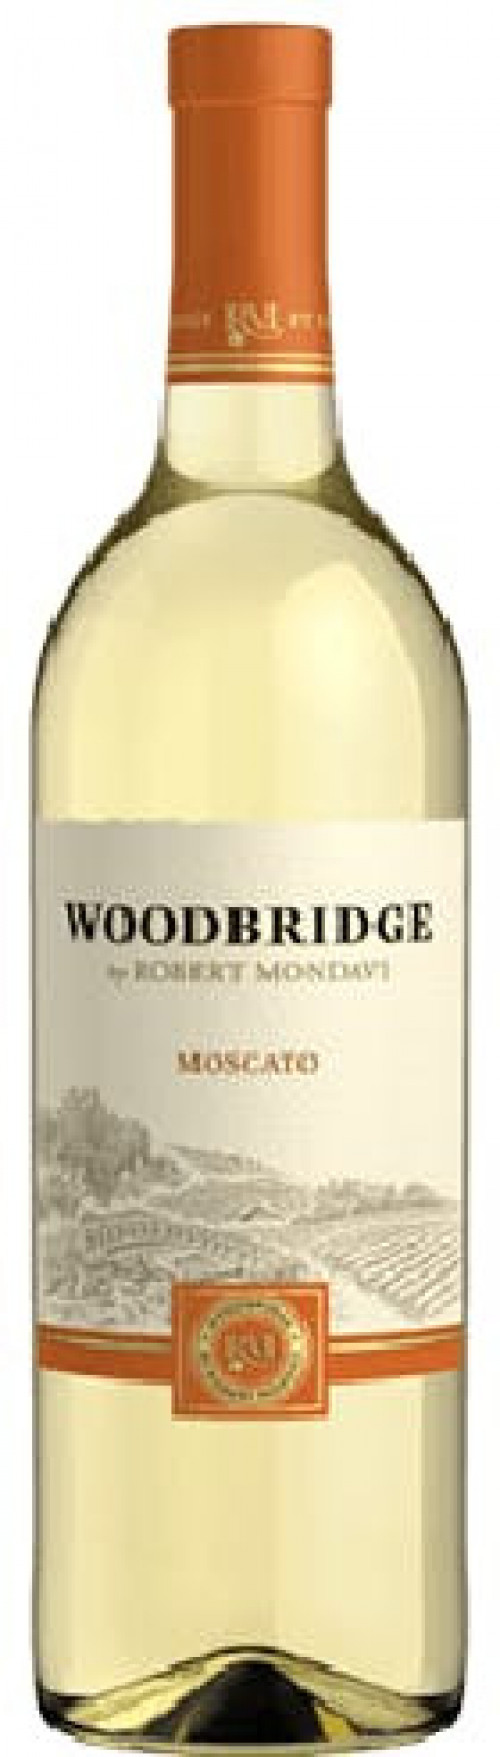 Woodbridge Moscato 750ml NV